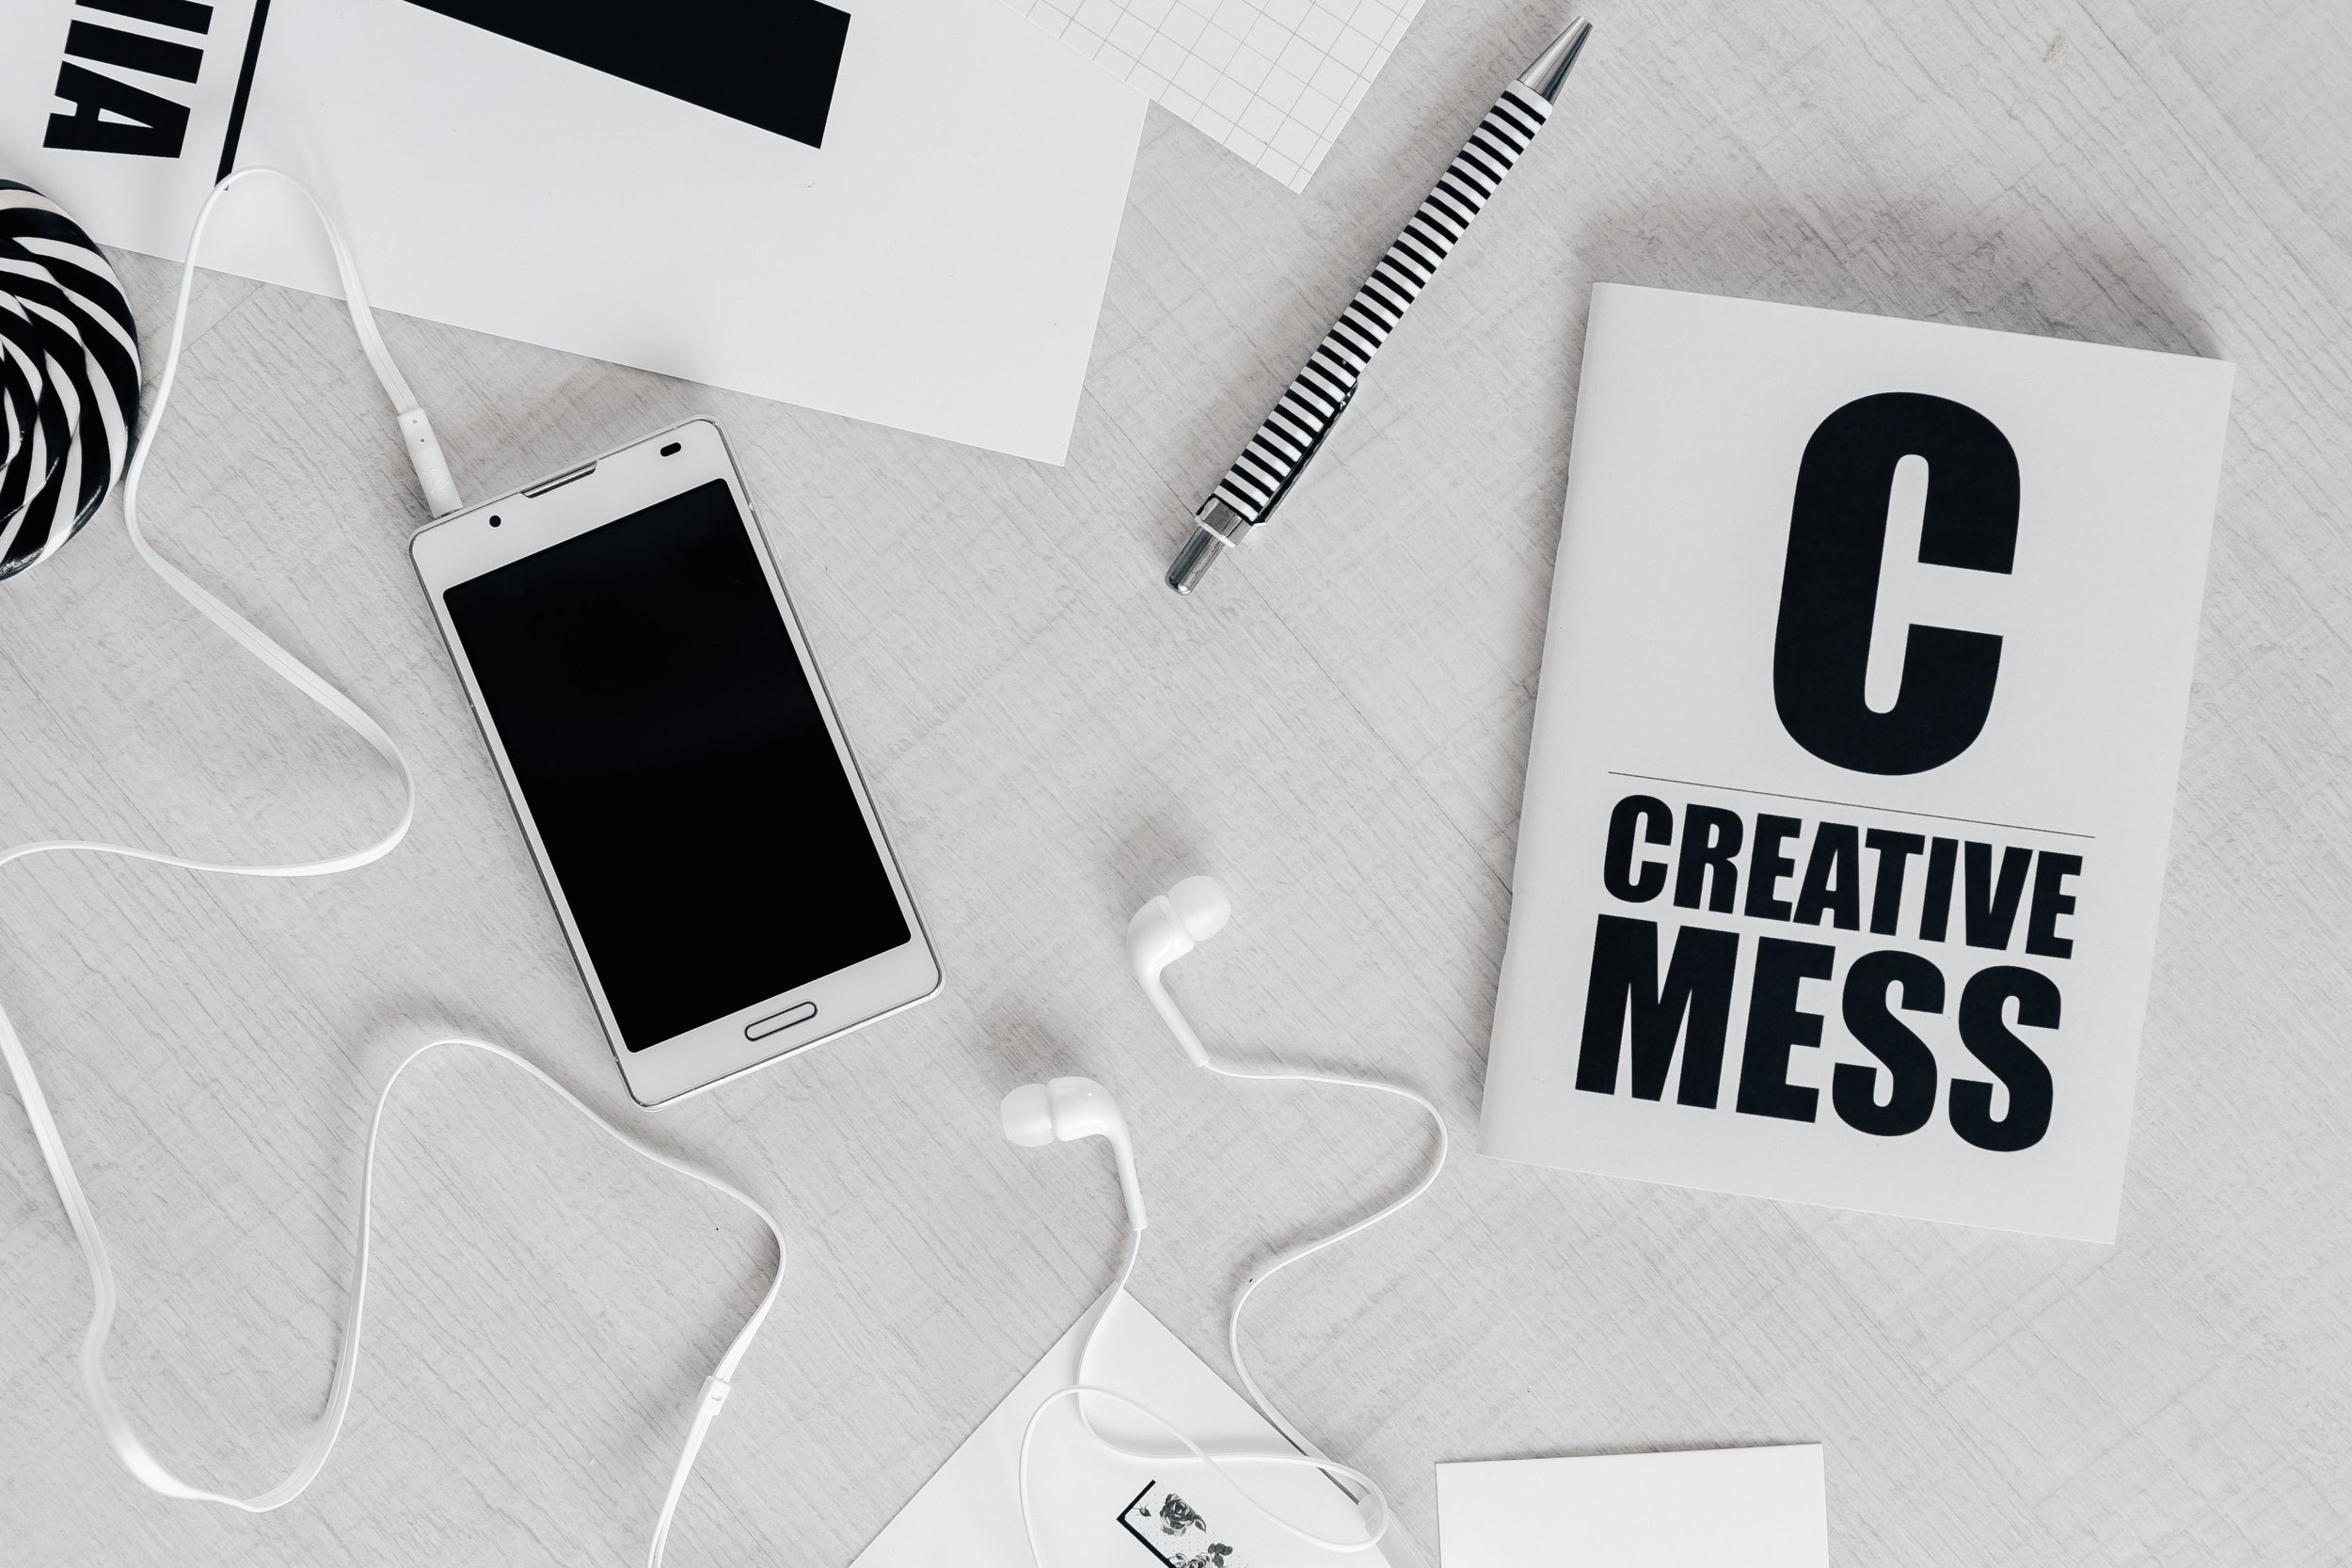 Stay tuned! - FREE marketing resources are frequently updated on this page. Learn about online marketing, PR,Influencer marketing and much more!